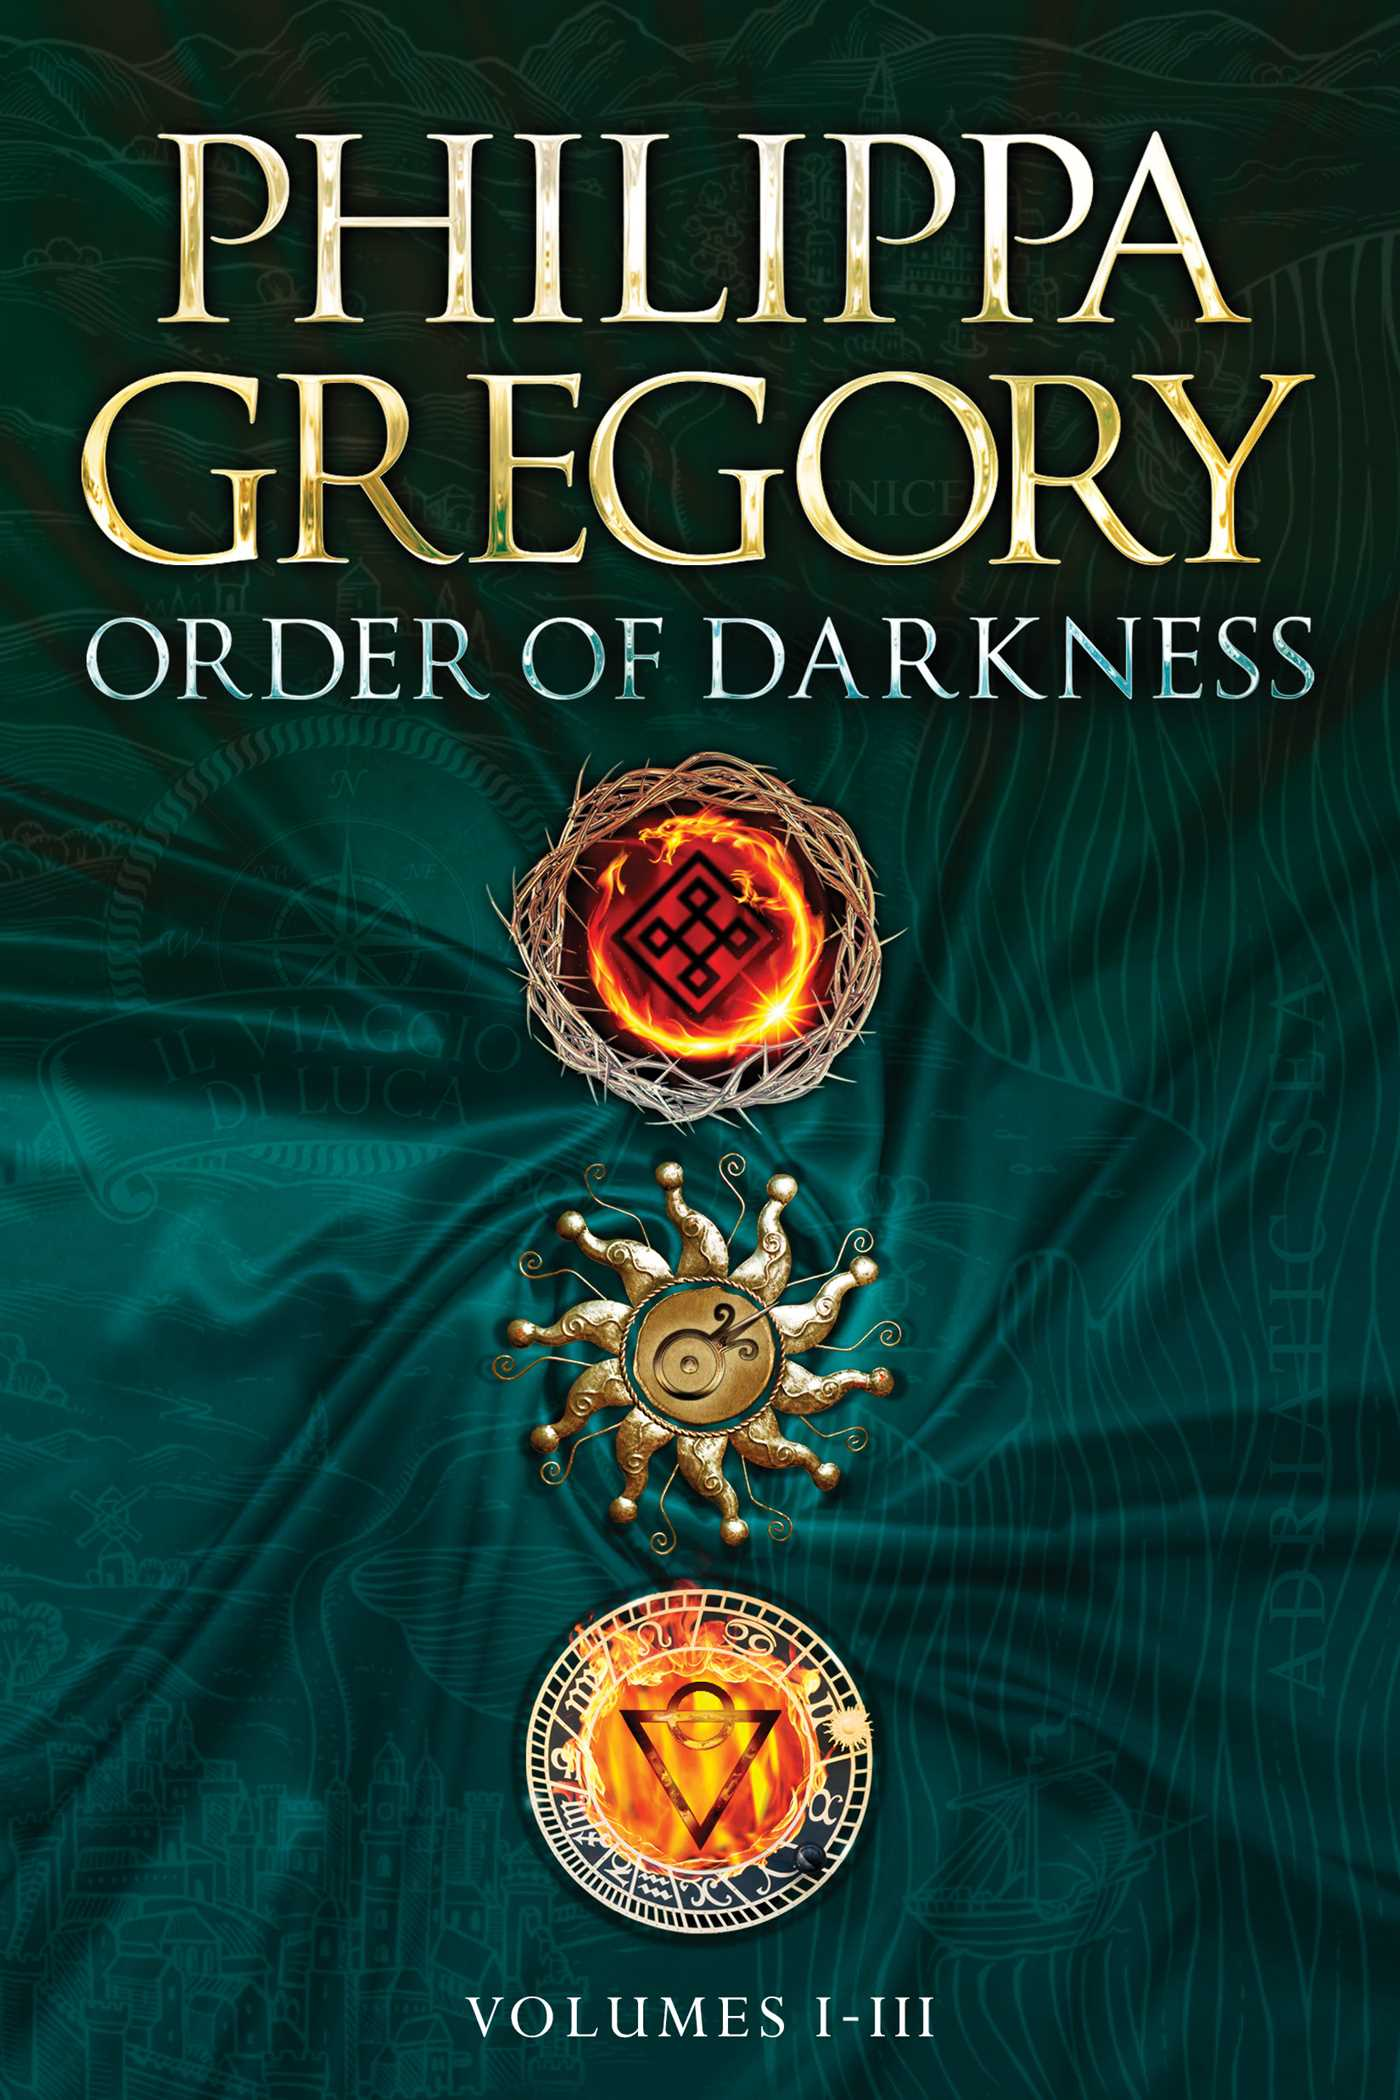 Order of Darkness Volumes I-III